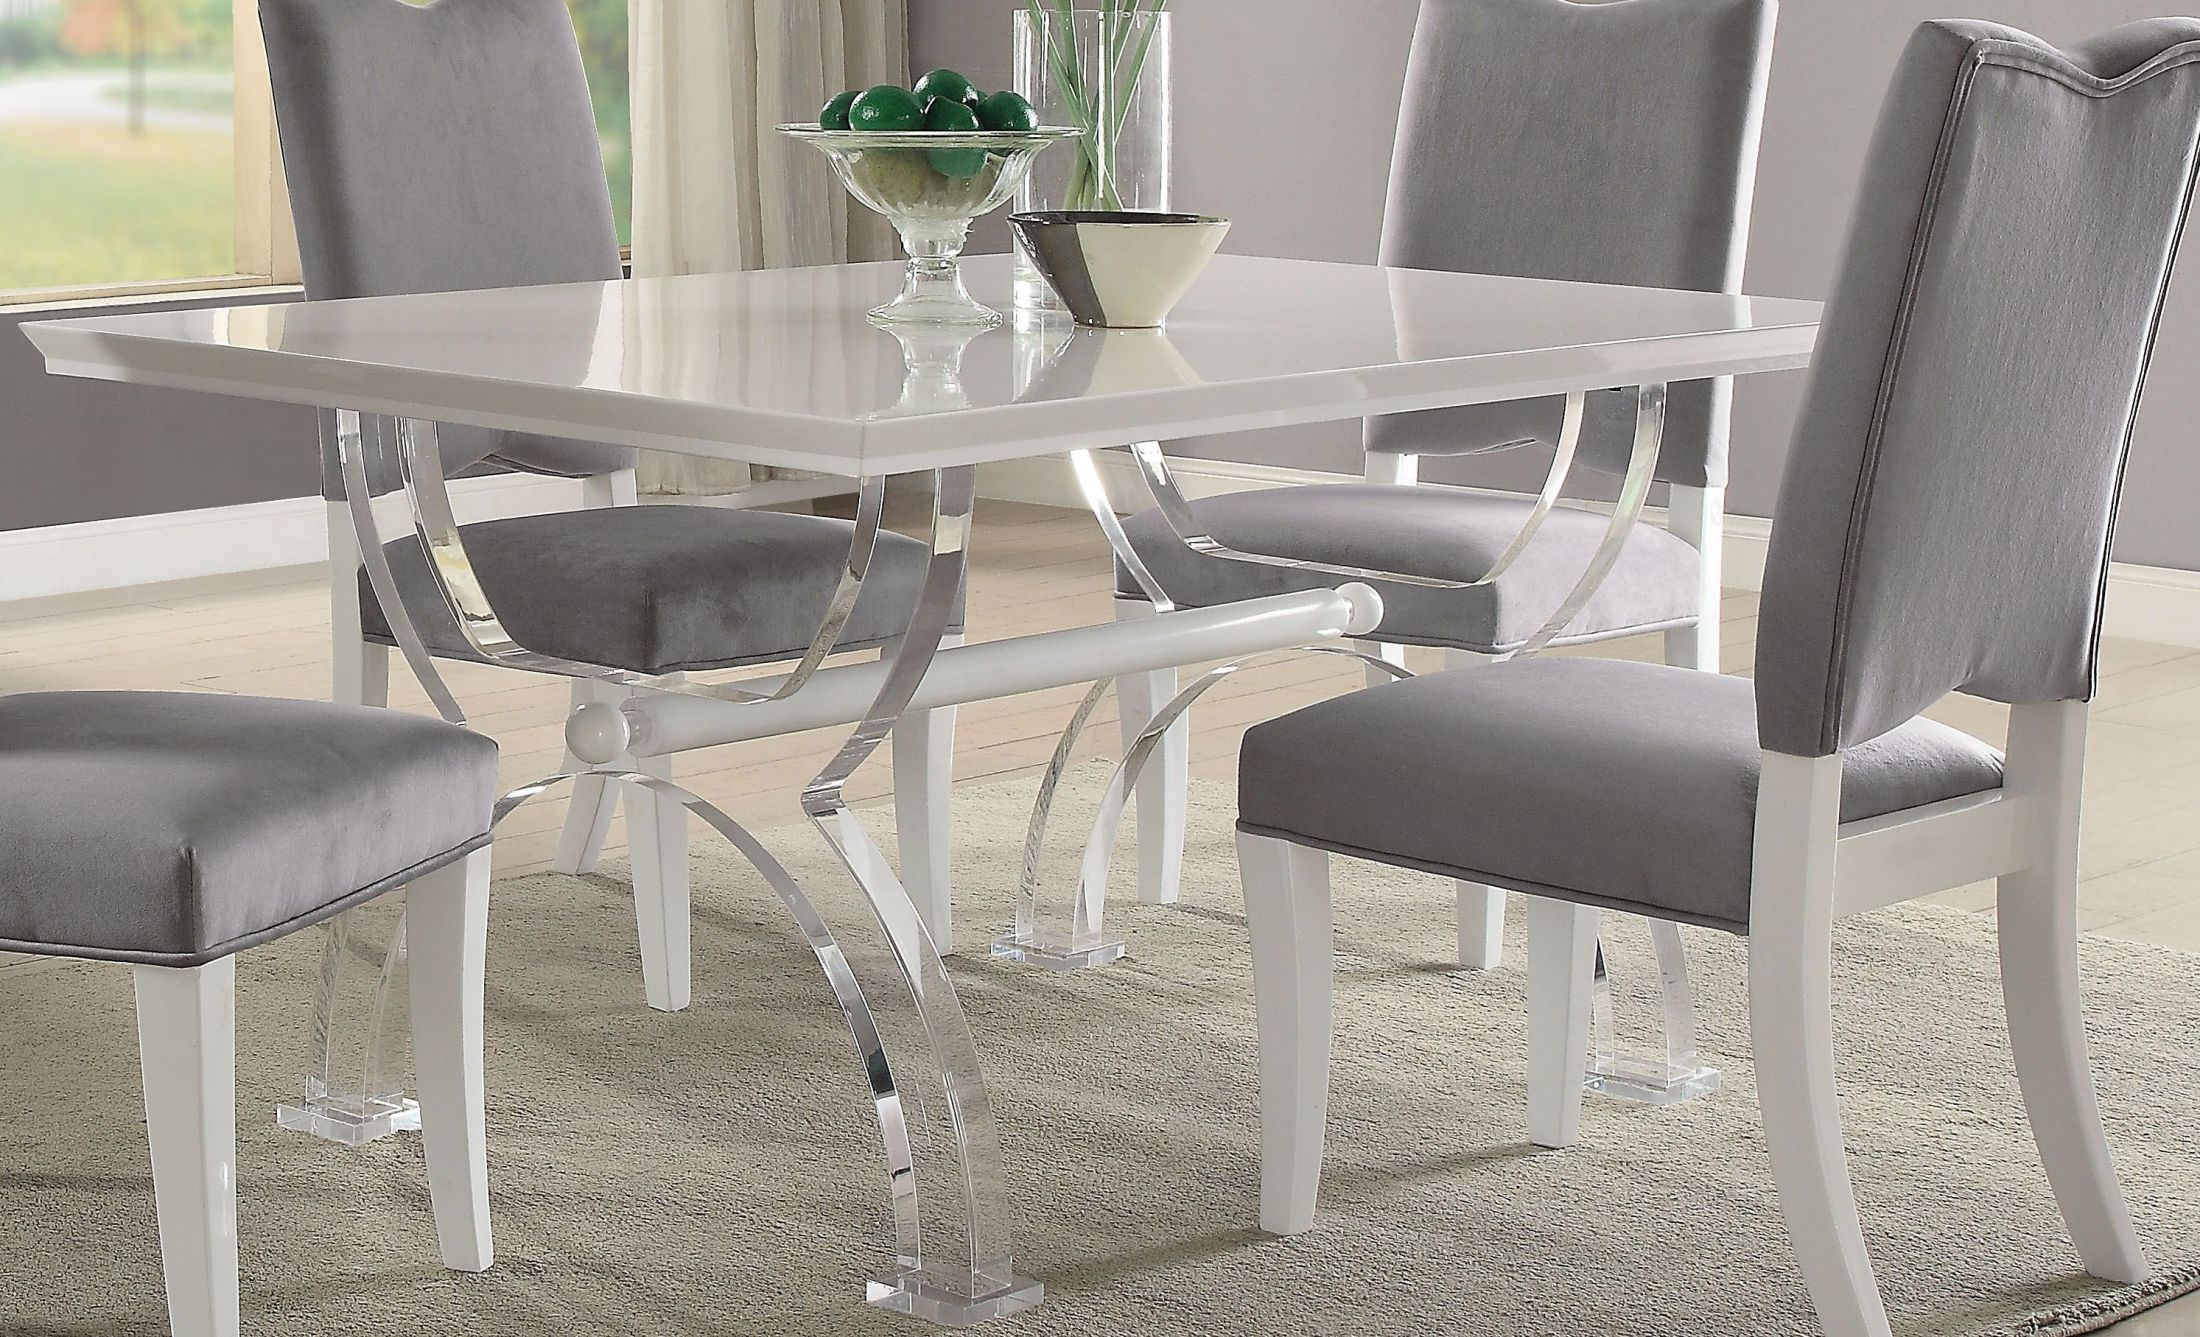 ACME Martinus High Gloss White and Clear Acrylic Dining